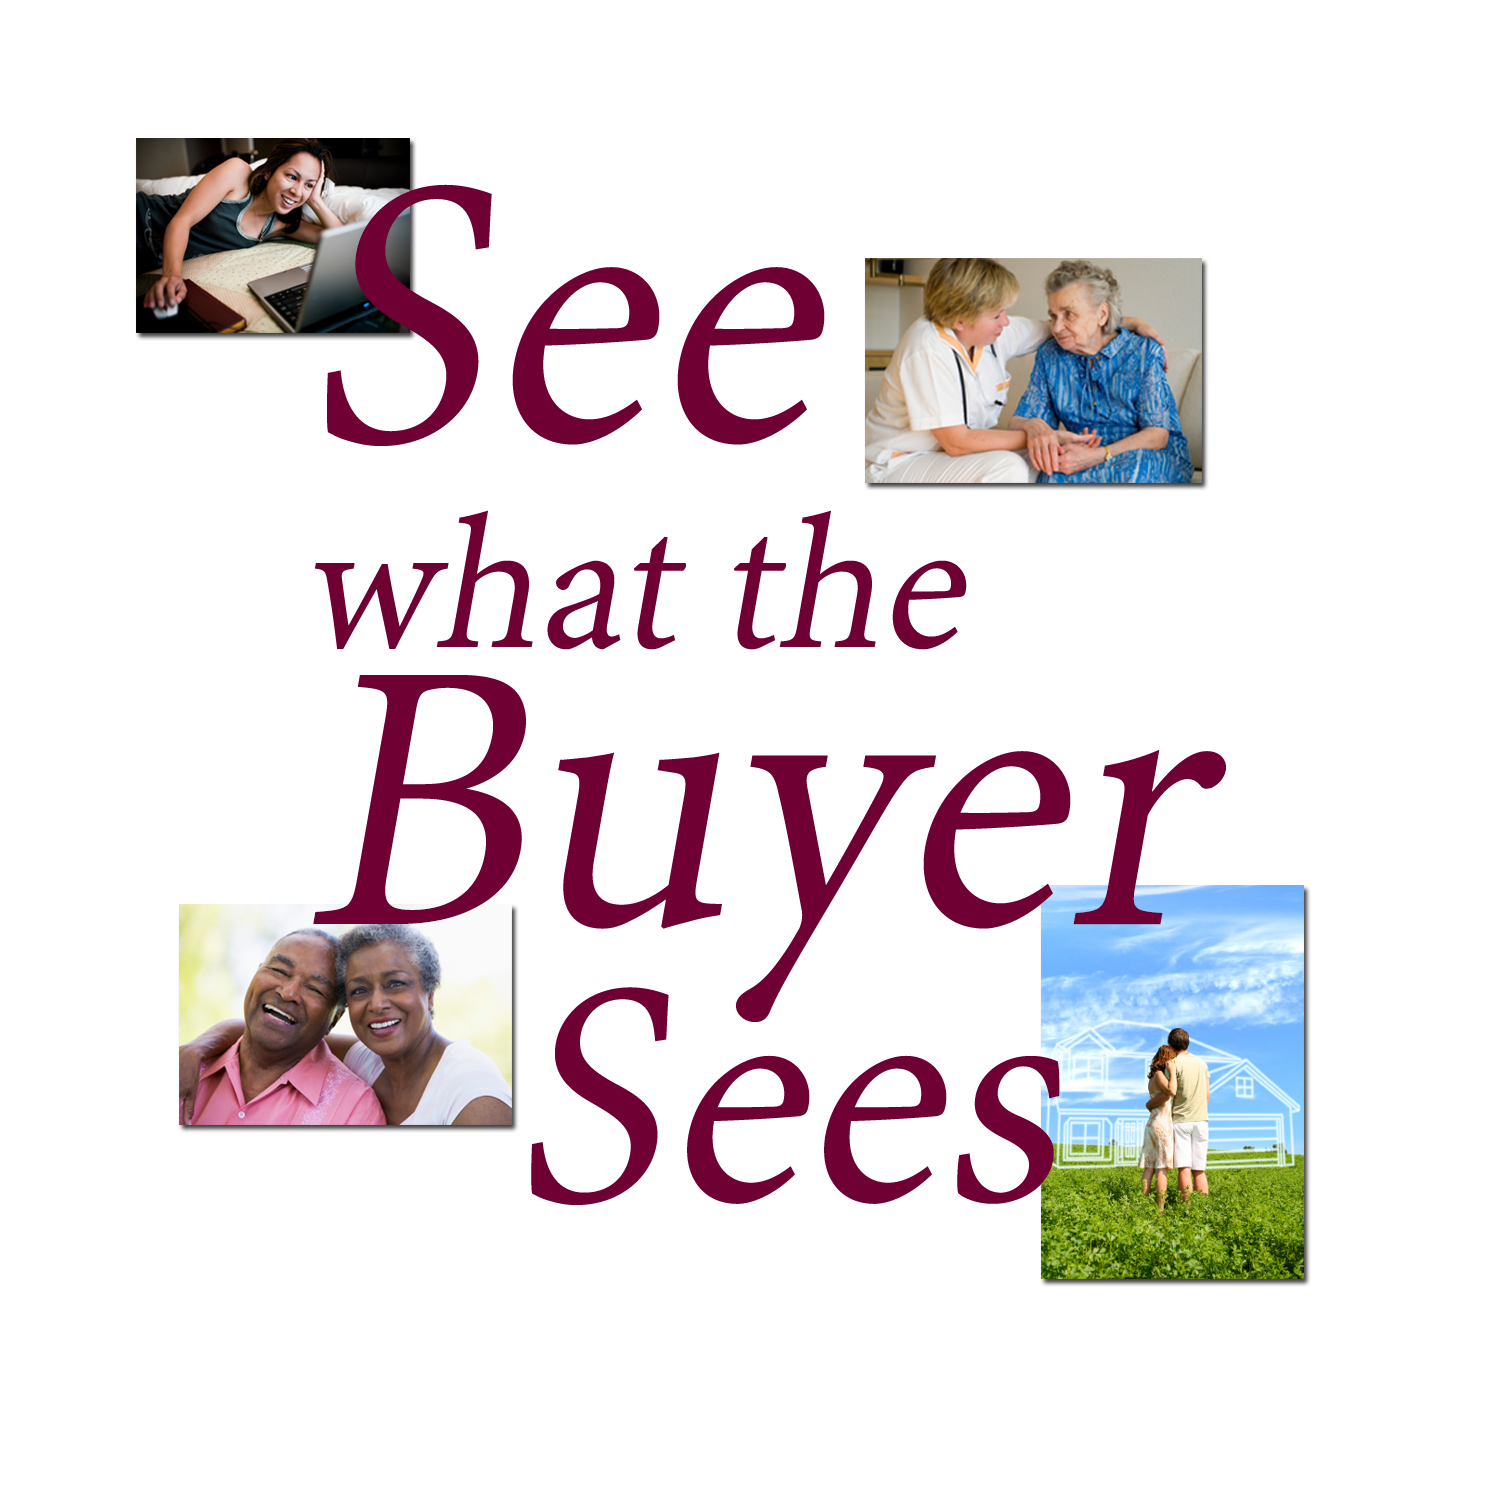 Seewhatthebuyersees2a.png